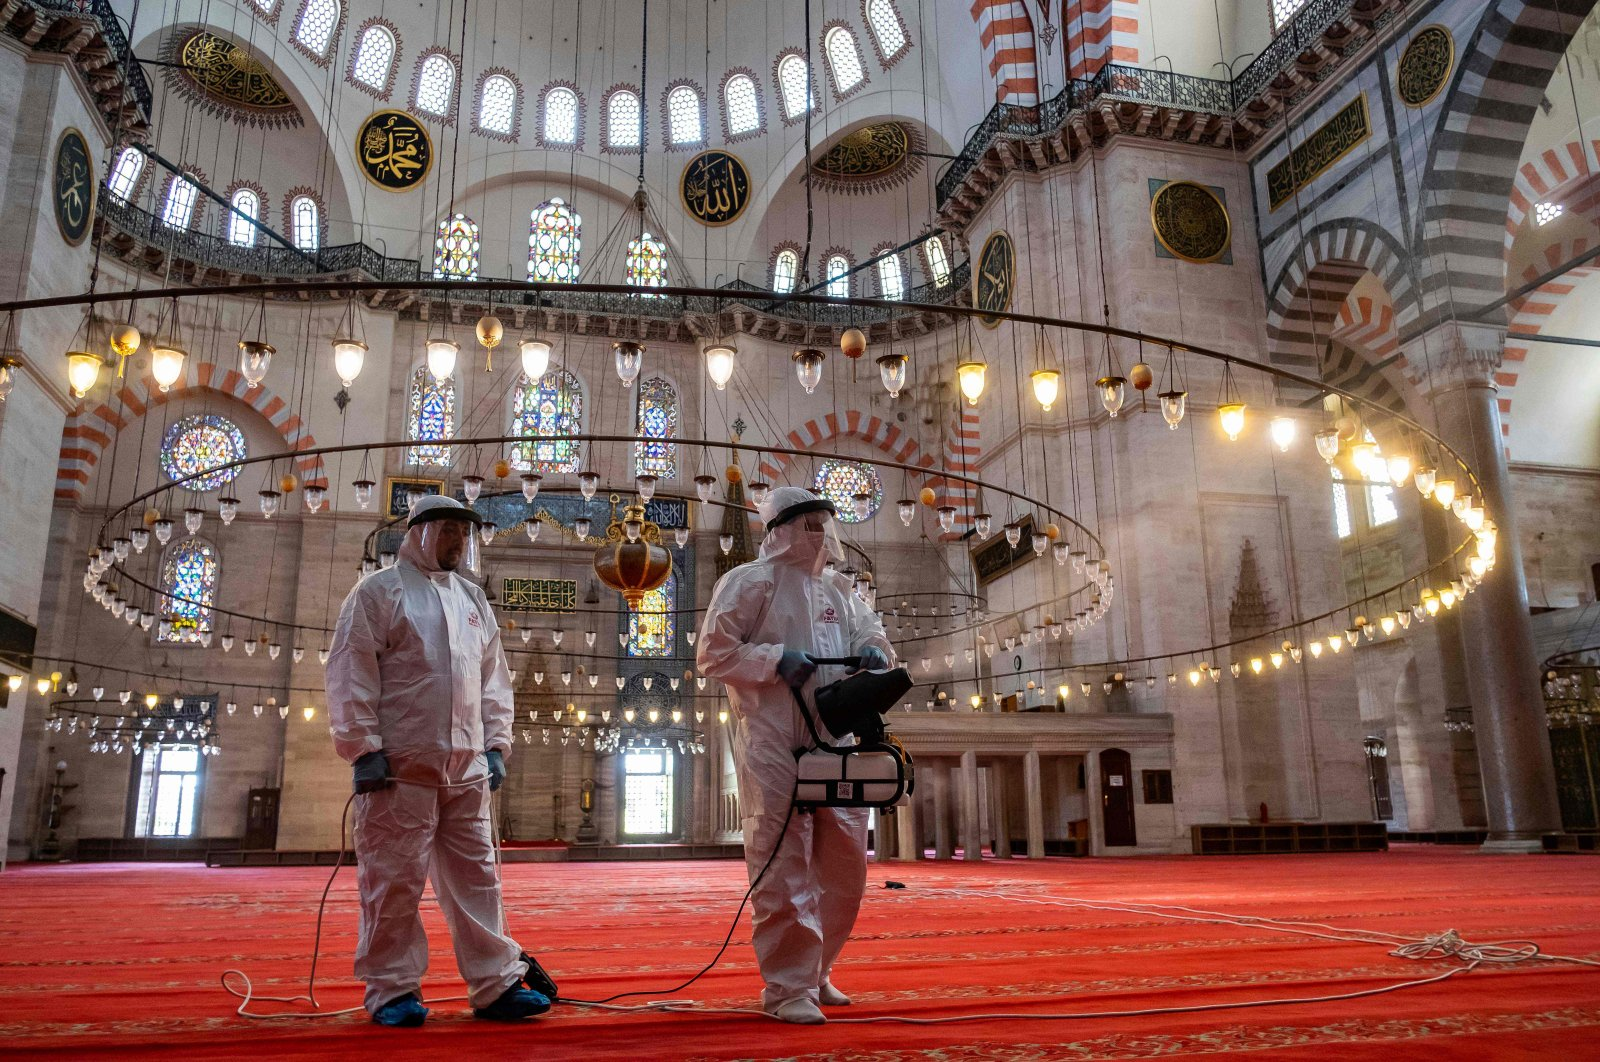 Fatih Municipality workers disinfect the Suleymaniye Mosque before its reopening on the last day of Ramadan Bayram amid the coronavirus pandemic, Istanbul, May 26, 2020. (AFP Photo)